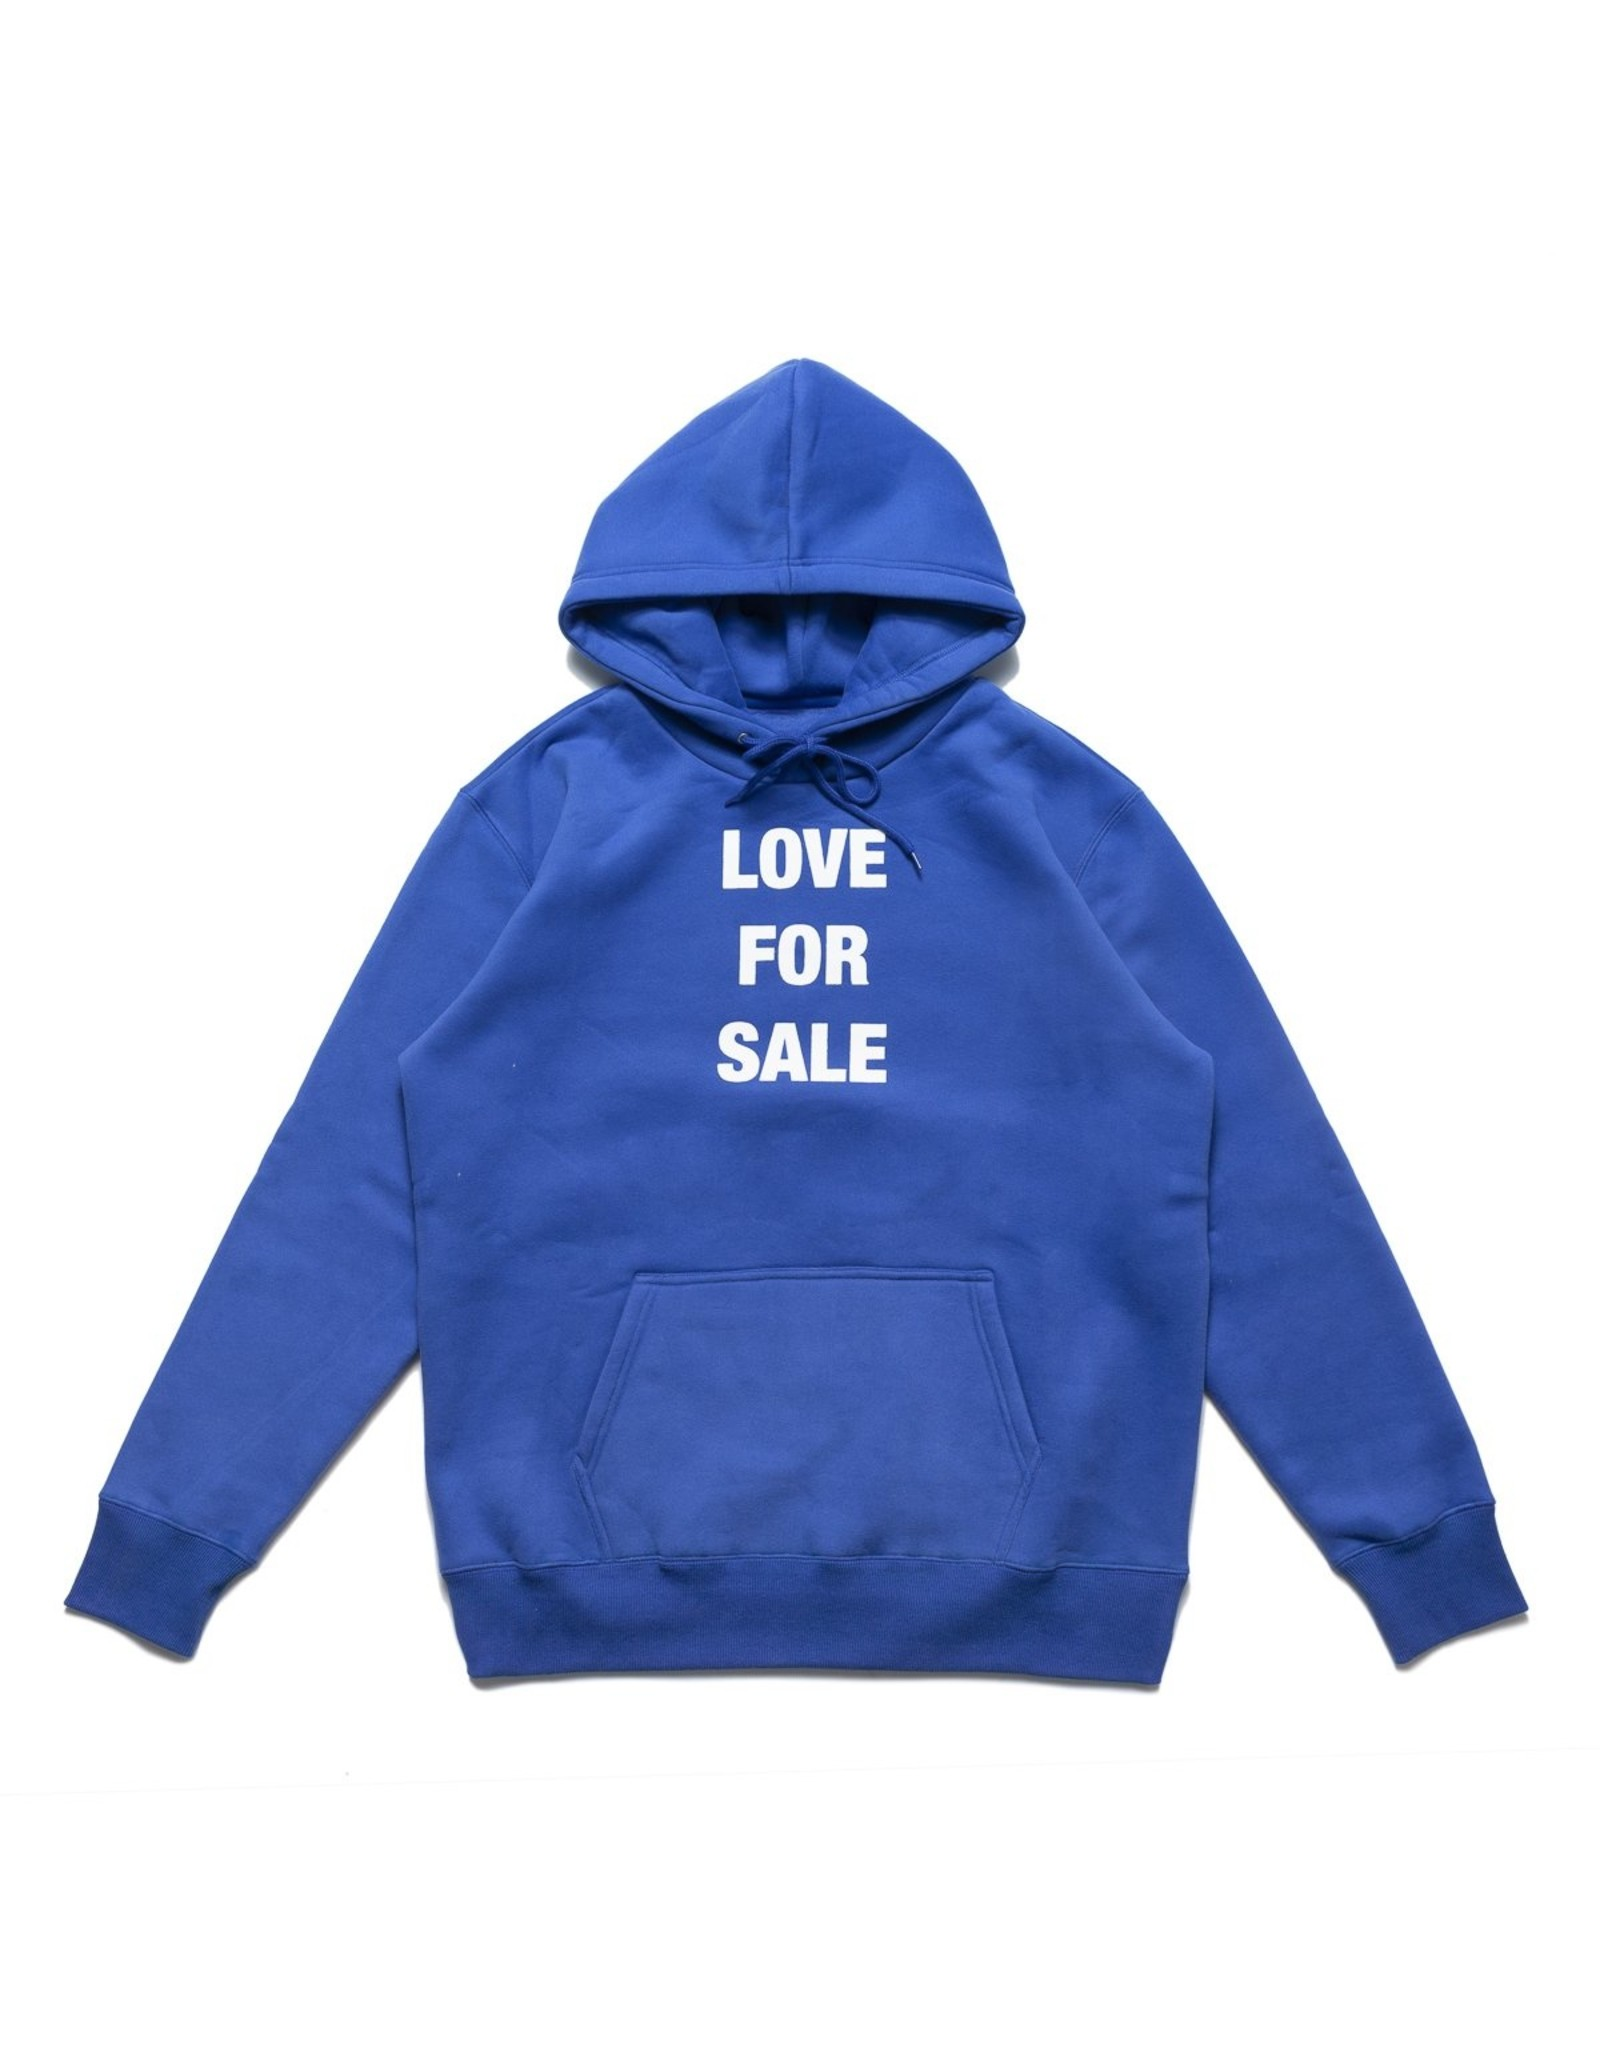 CHRYSTIE CHRYSTIE - LOVE FOR SALE HOODIE - BLUE - L